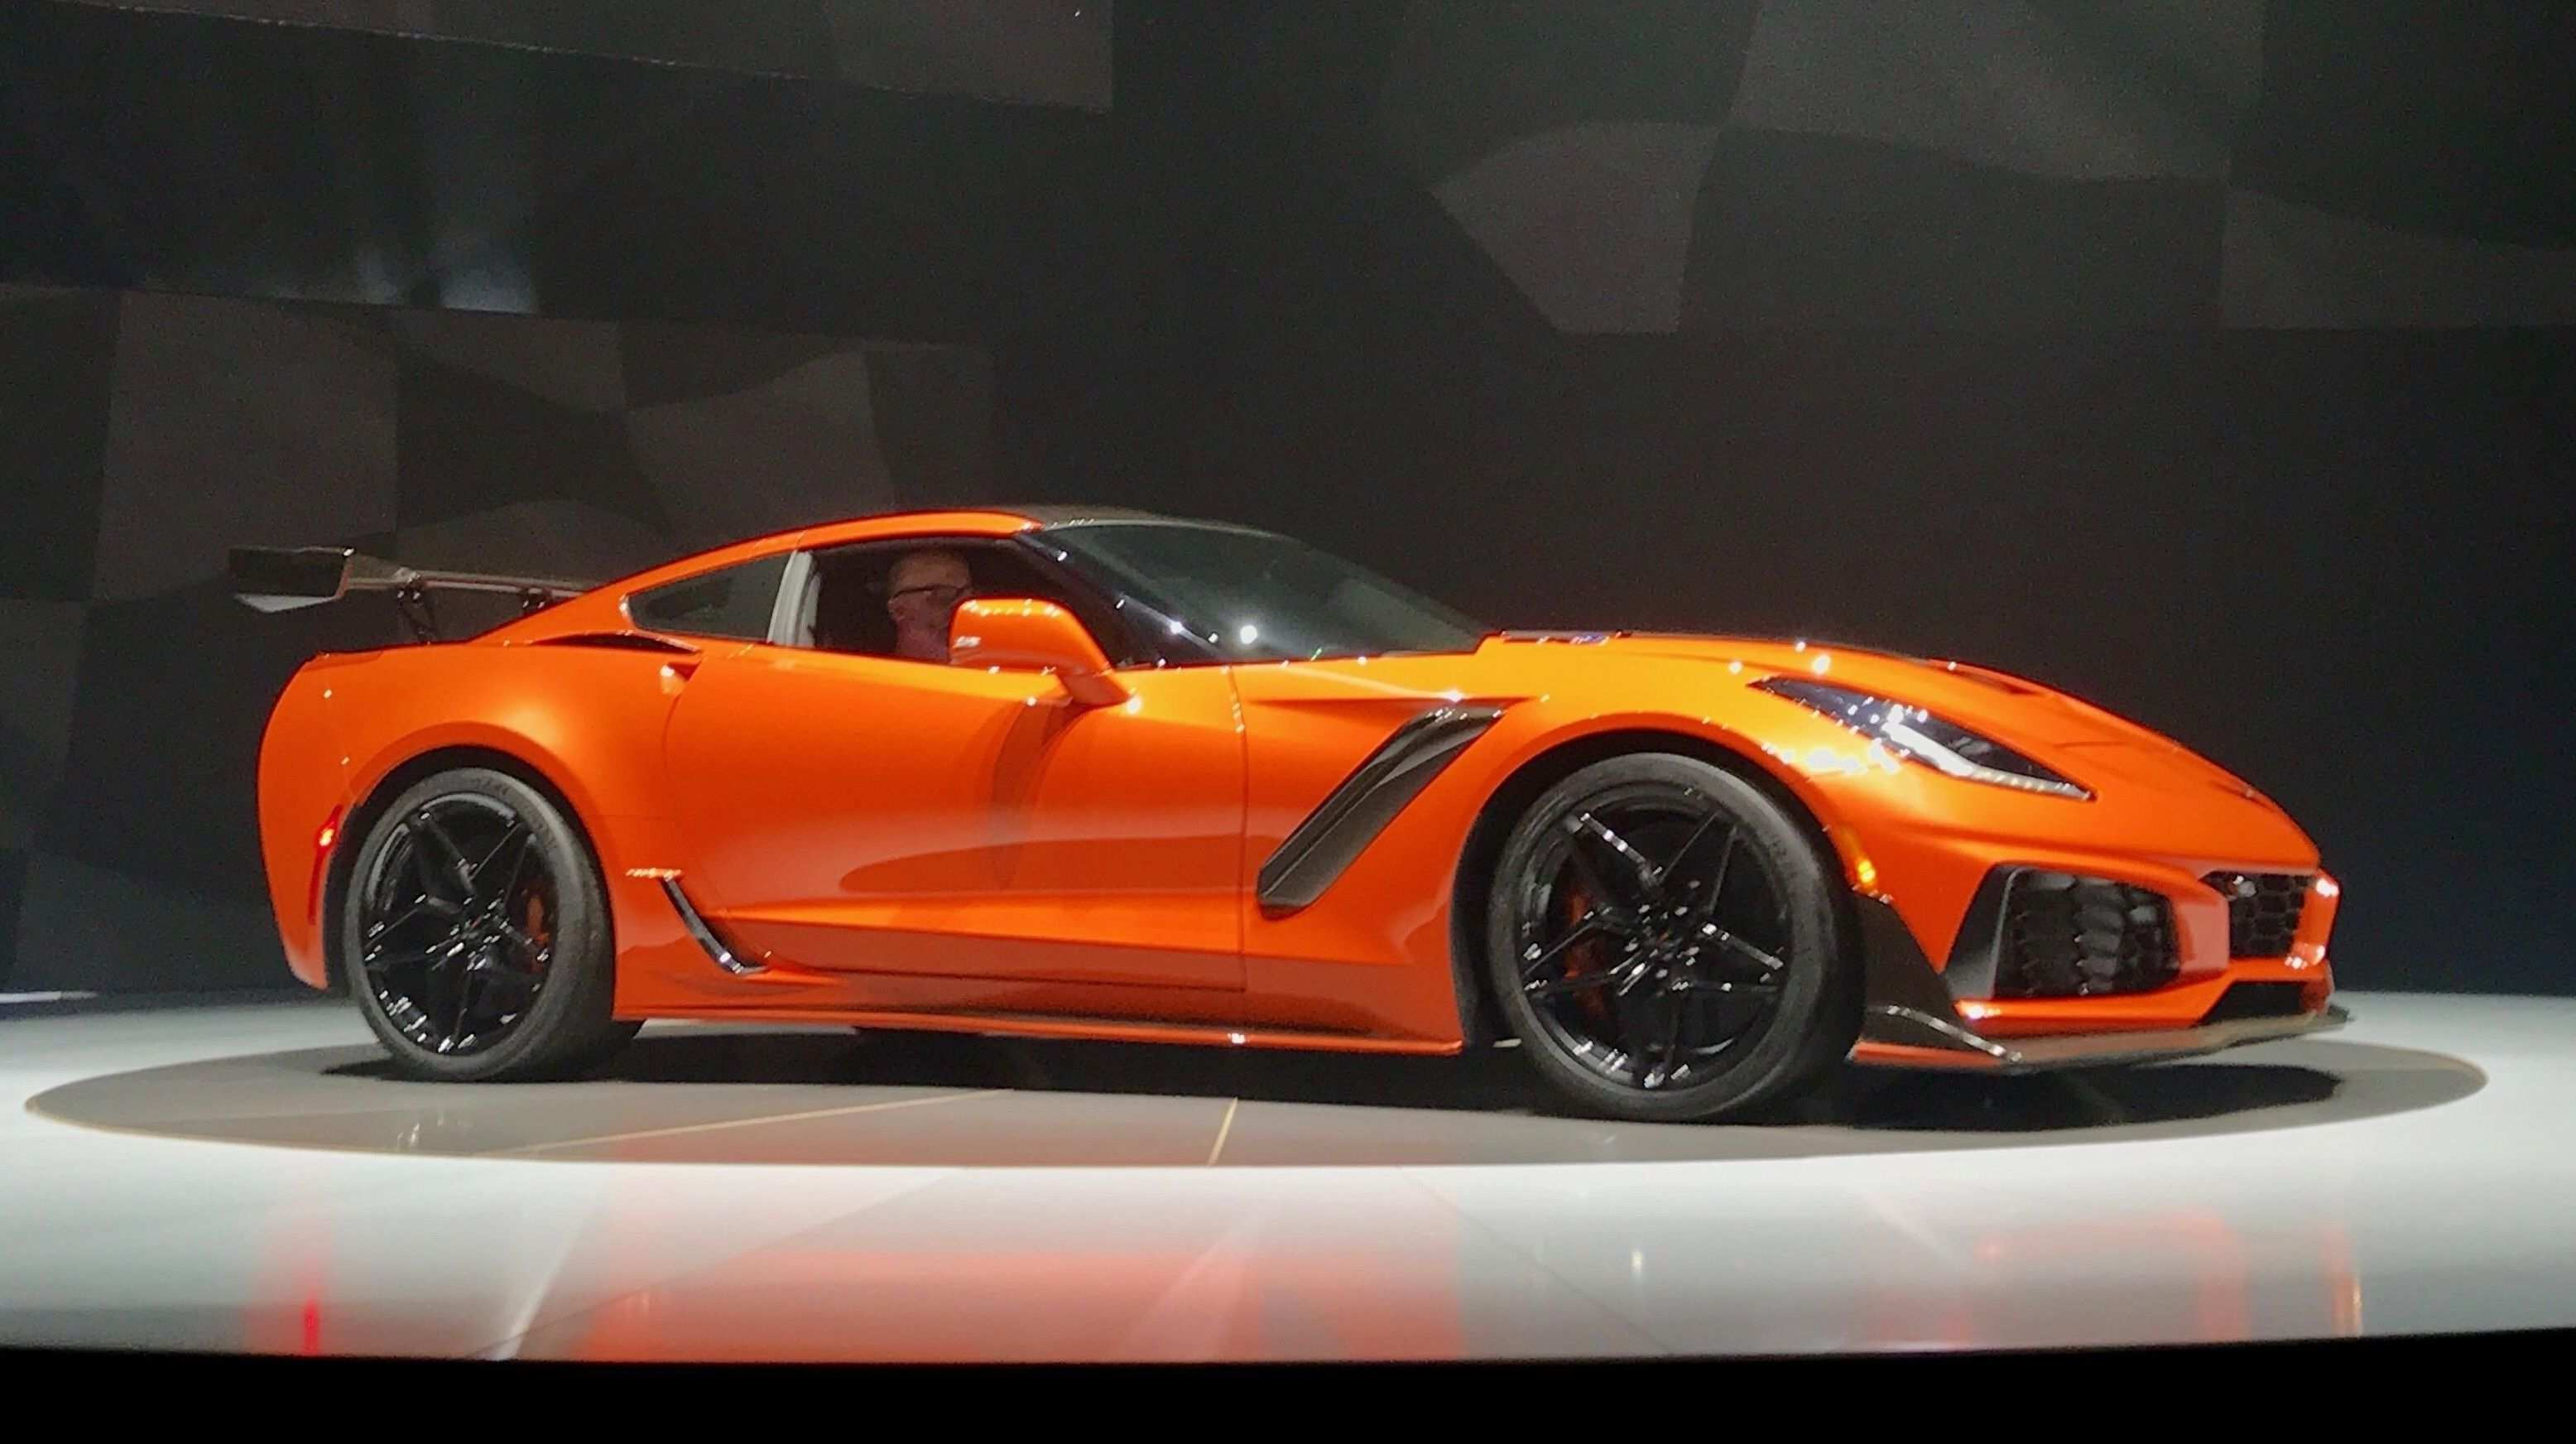 79 Best Review 2019 Chevrolet Zr1 Price Concept by 2019 Chevrolet Zr1 Price